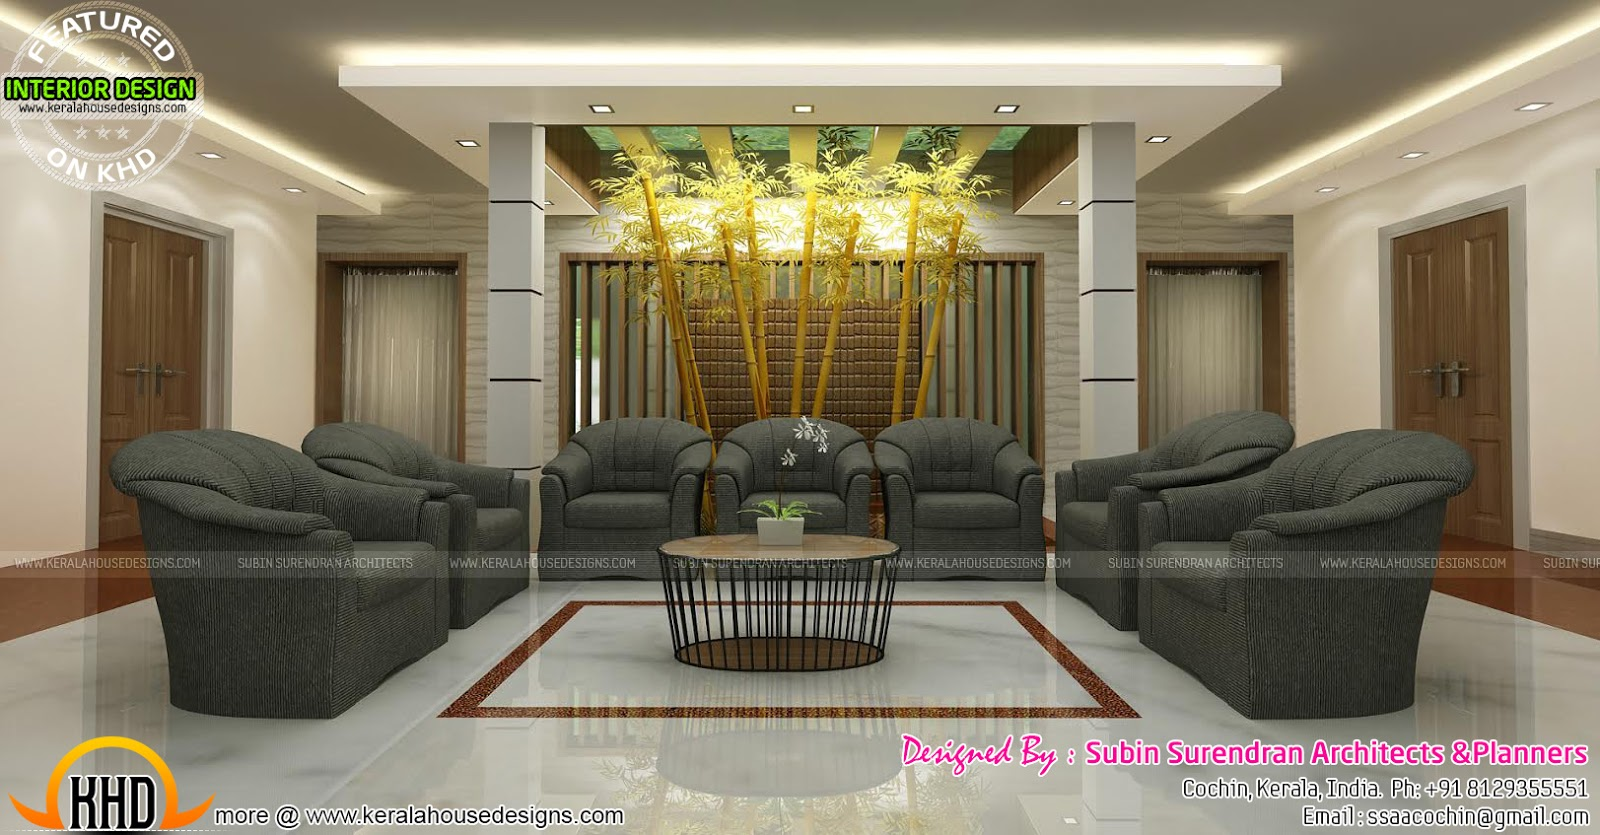 Living rooms modern kitchen interiors in kerala kerala for Kerala home interior designs photos